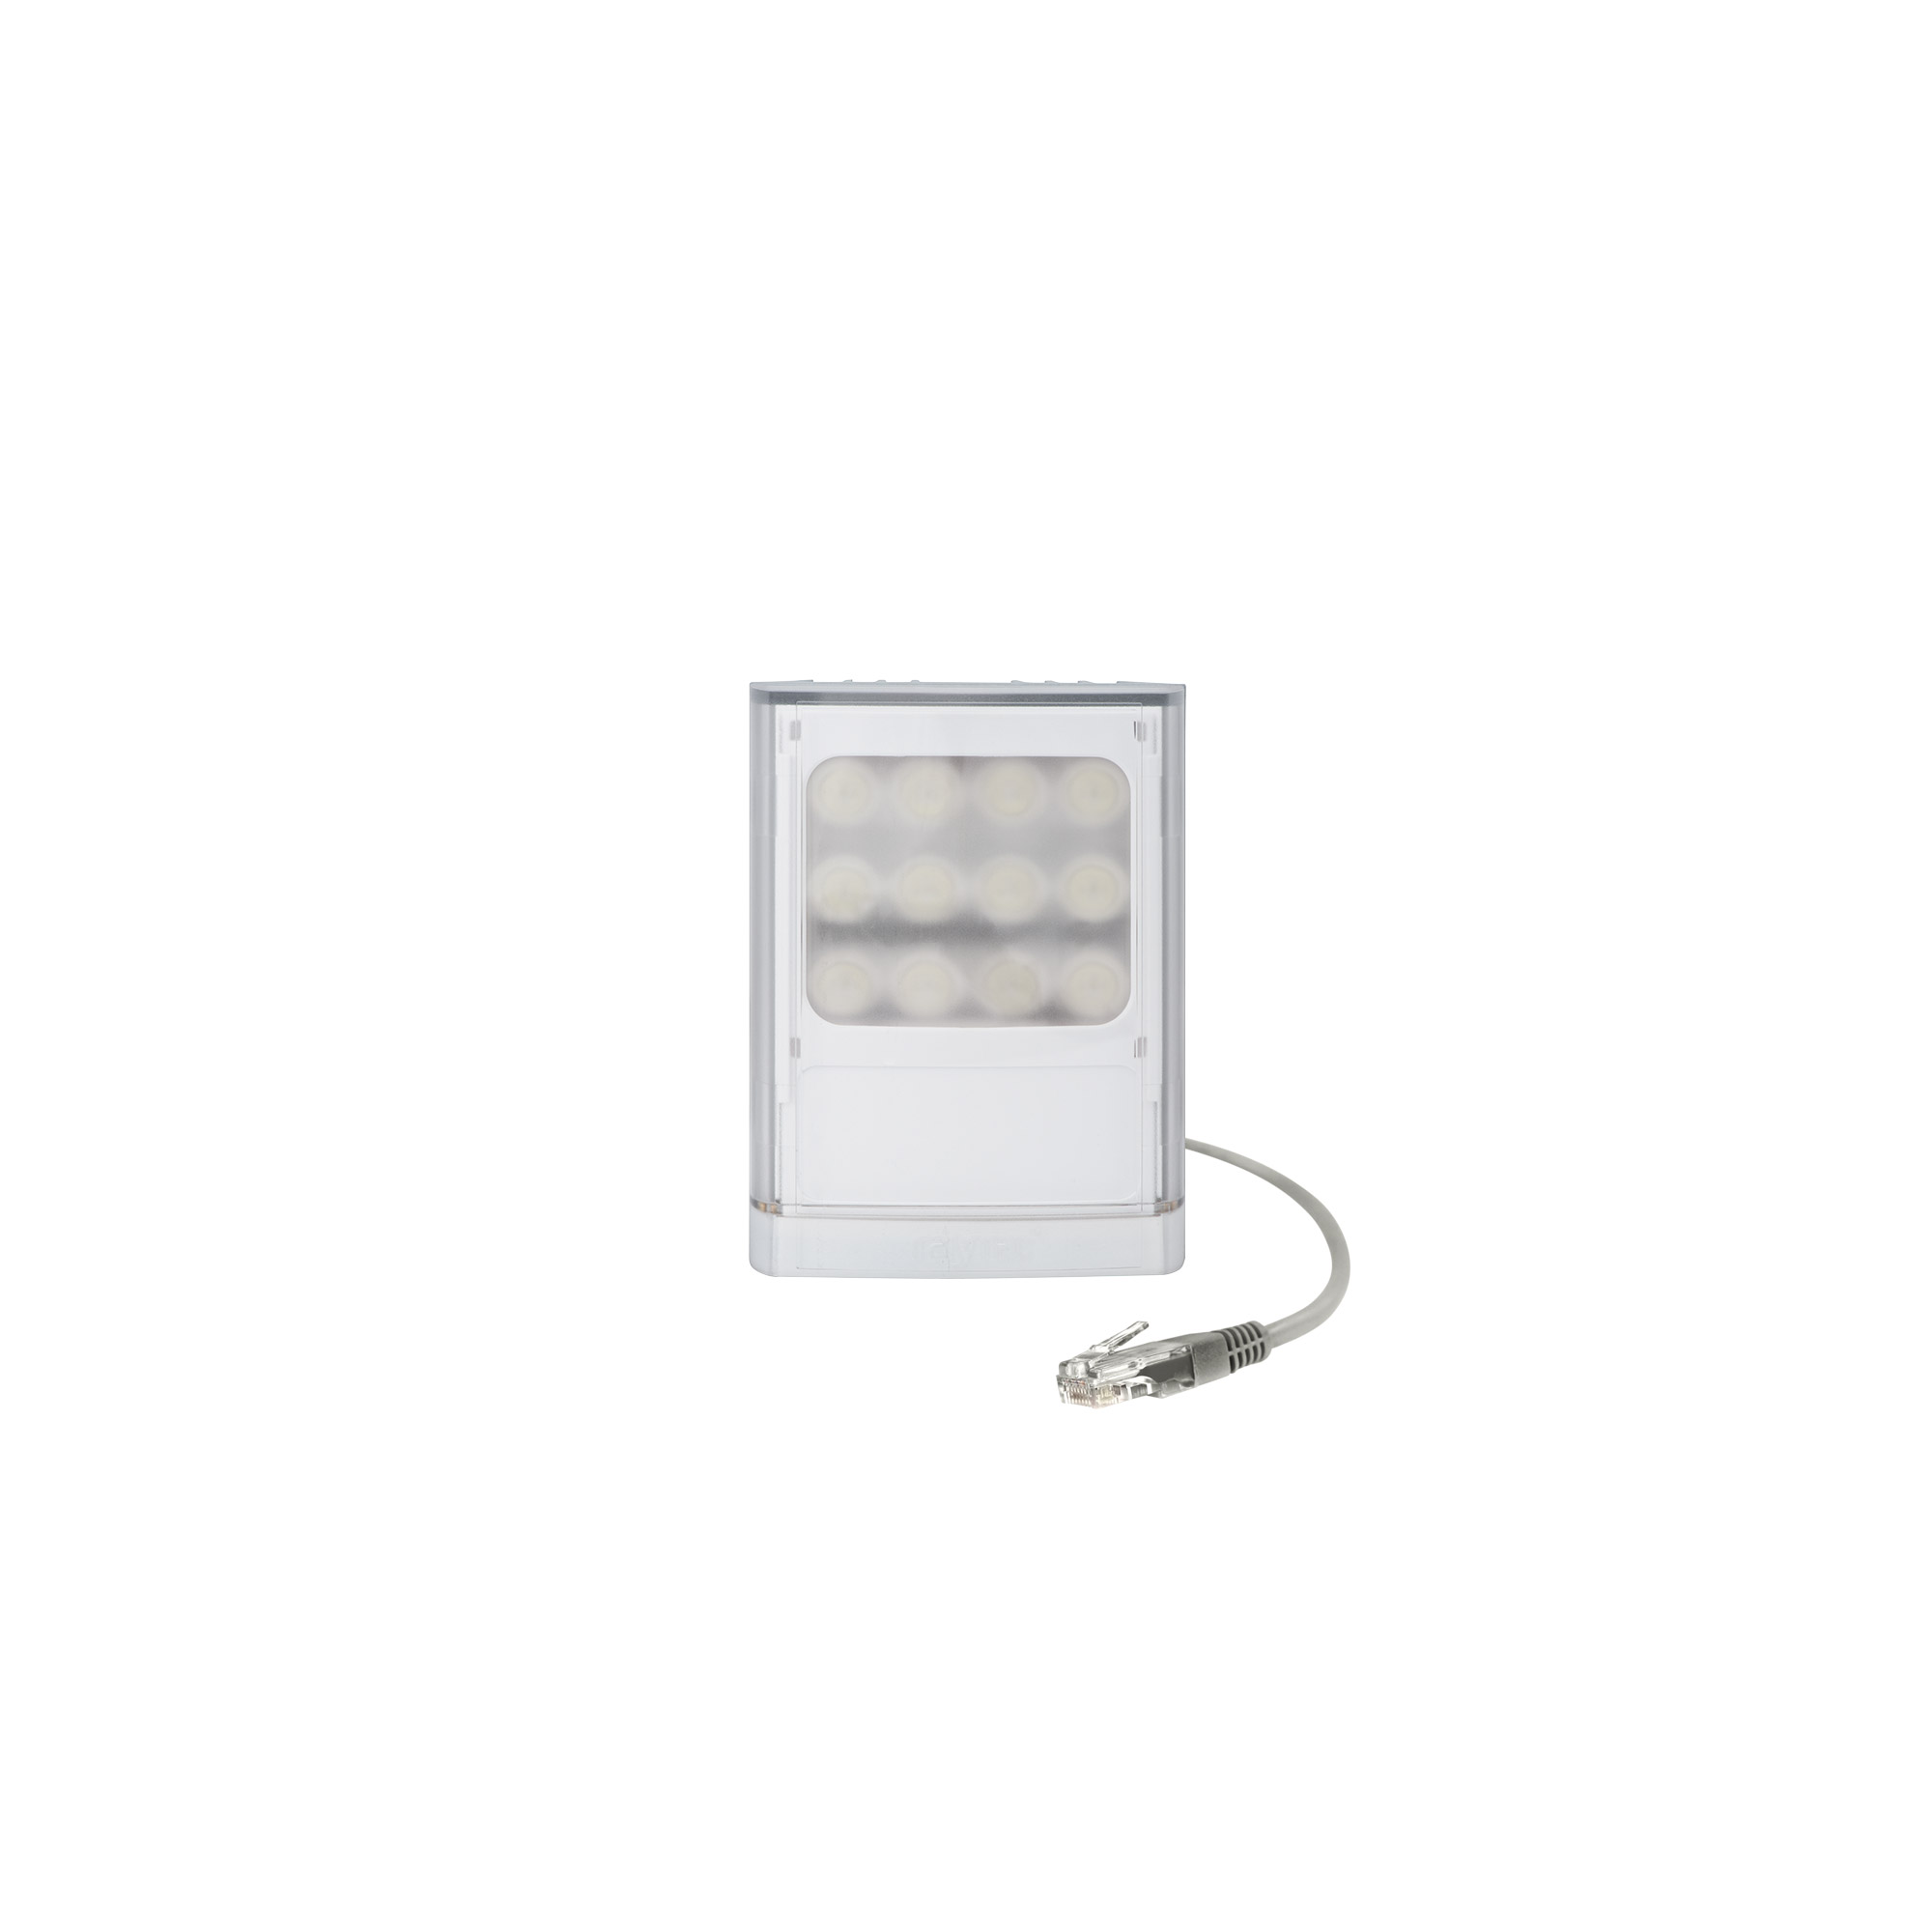 VAR2-IPPoE-w4-1 Medium Range White-Light Network Illuminator